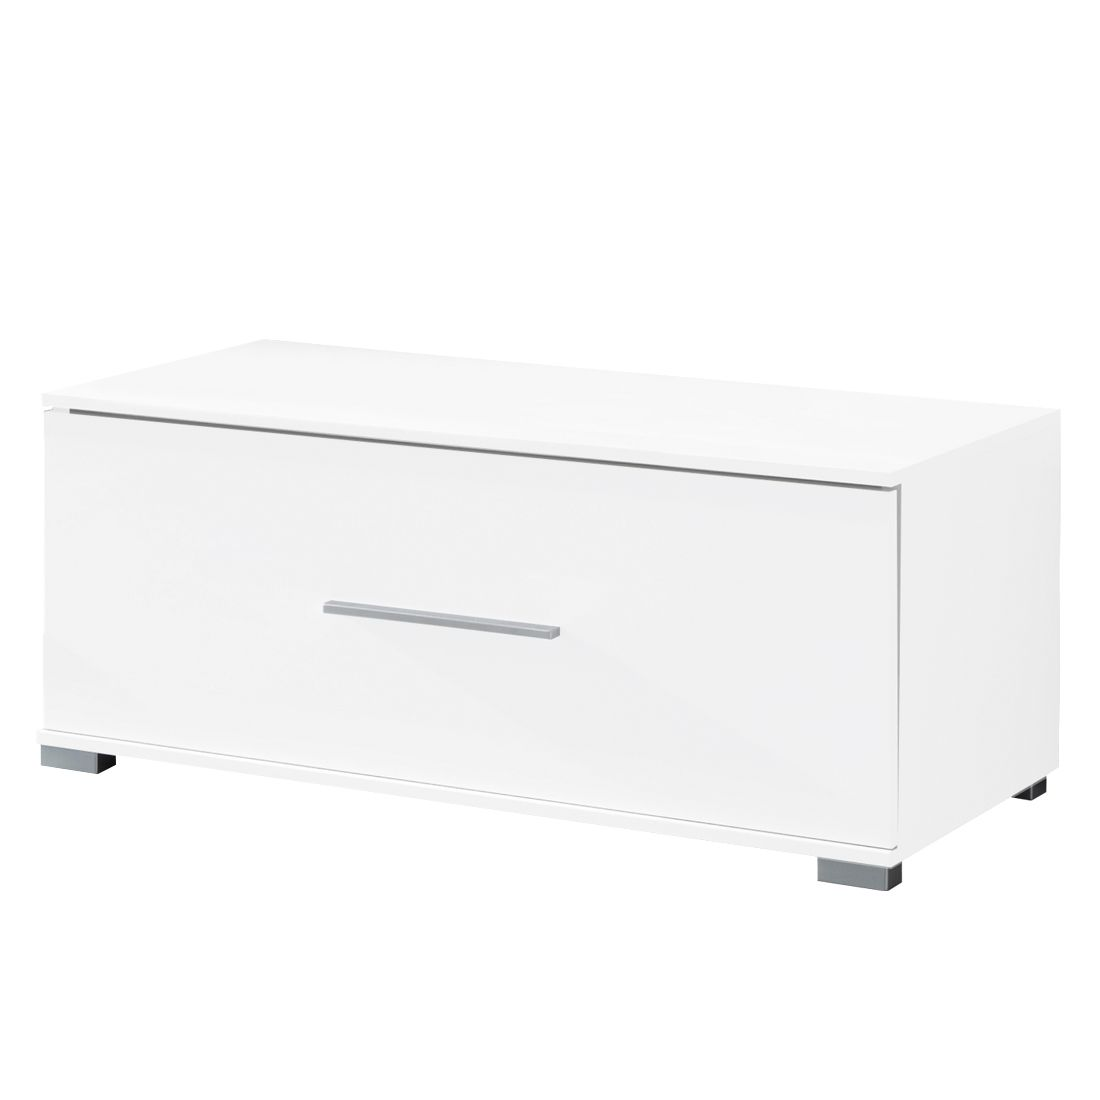 Meuble TV Vogue I - Blanc brillant / Blanc, Fredriks